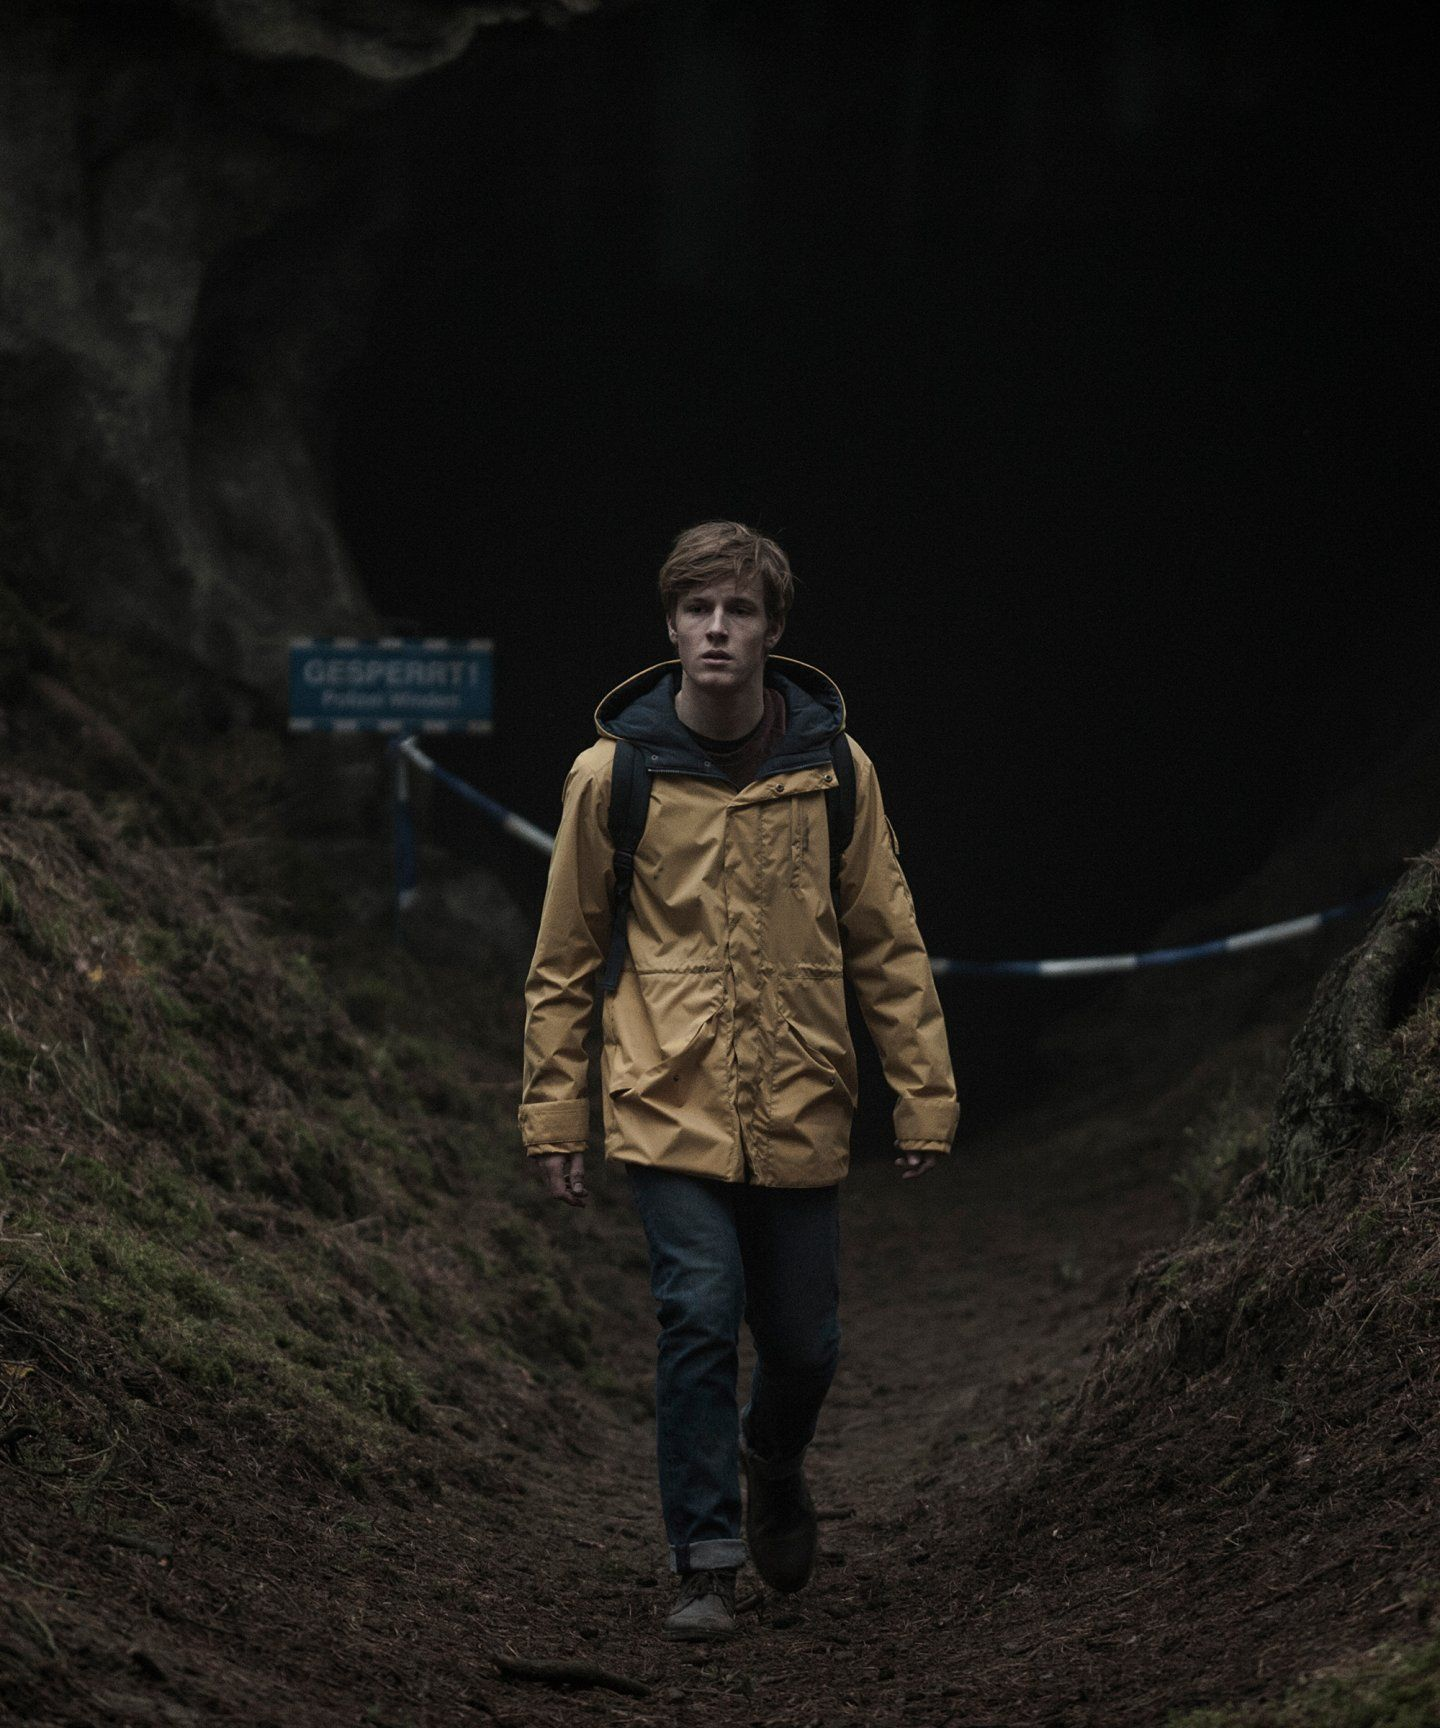 The Absolute Scariest Shows On Netflix Scary Shows Netflix Horror Series Shows On Netflix